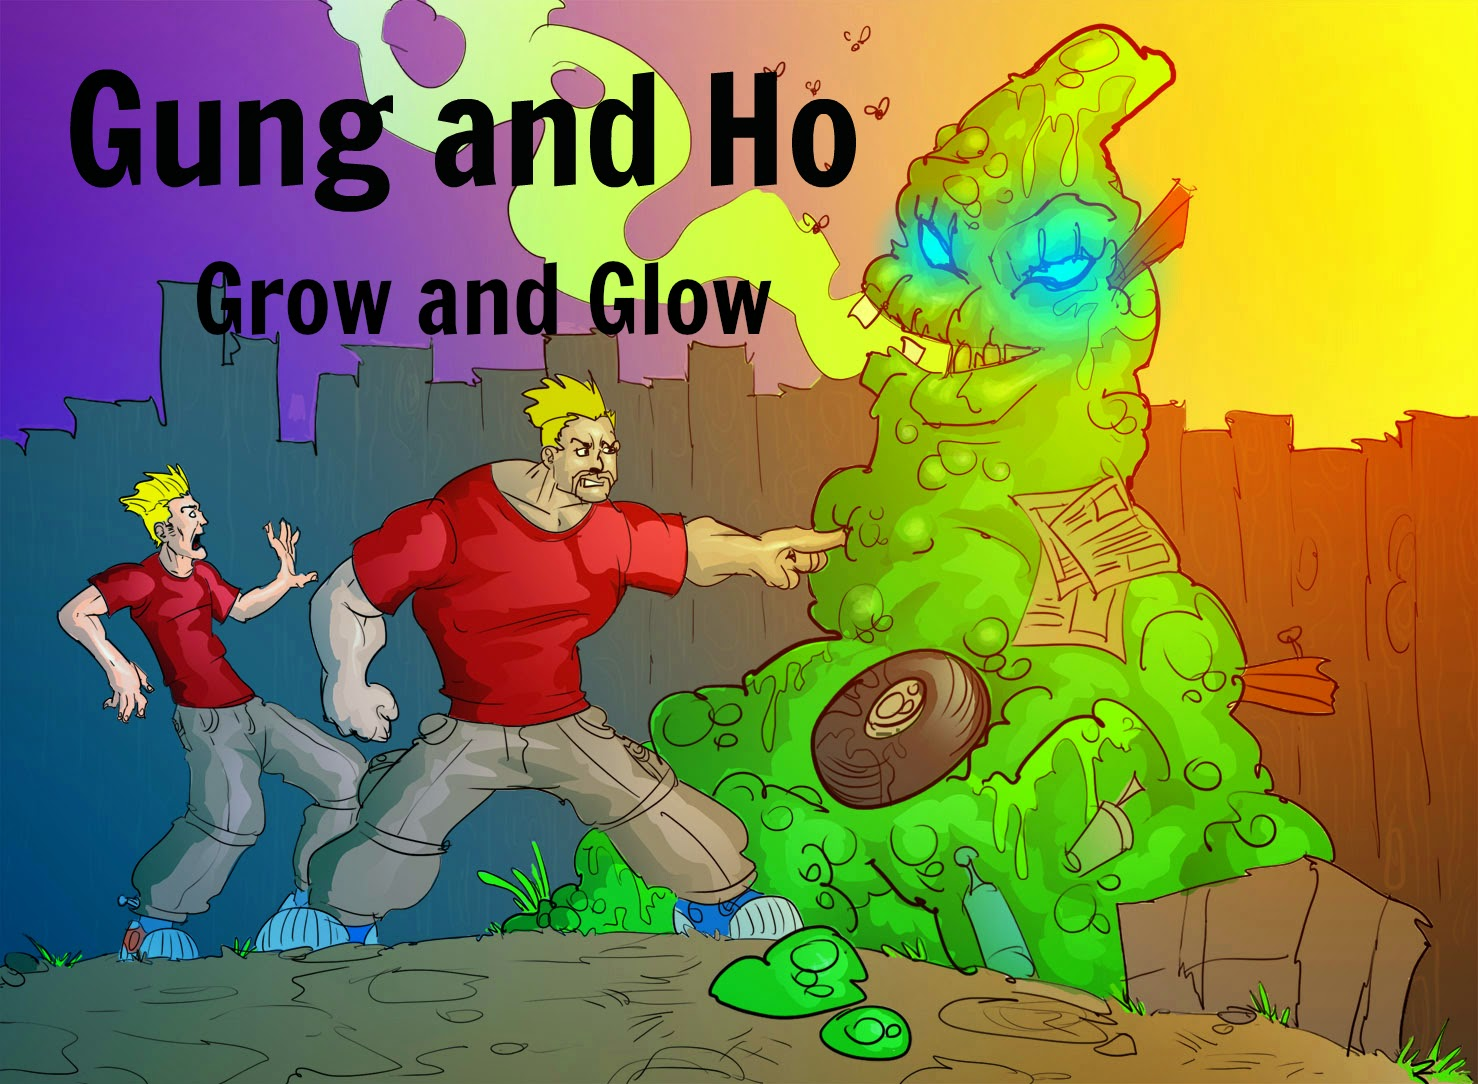 http://www.amazon.com/Gung-Ho-Grow-Pat-Hatt-ebook/dp/B00MJ2F3S6